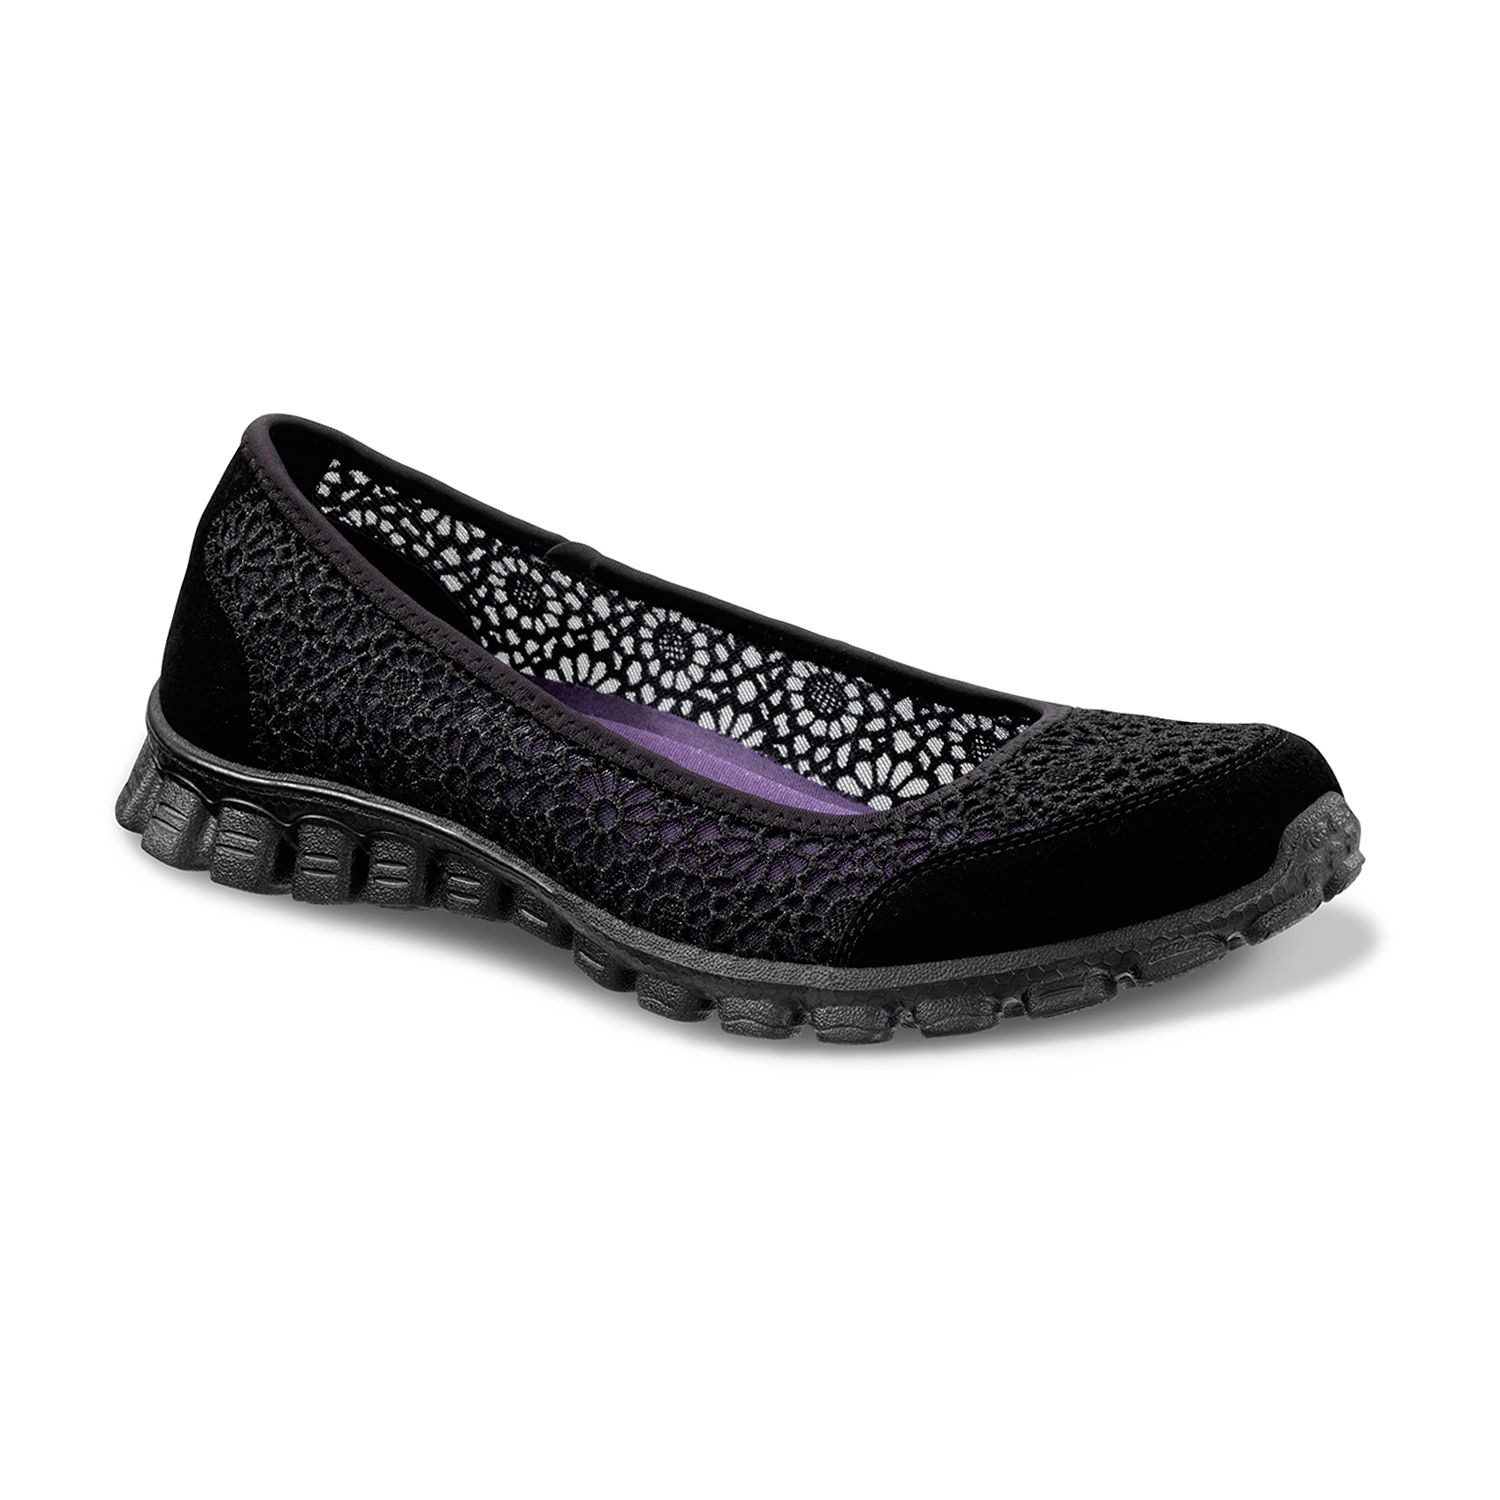 skechers sport women's ez flex sweetpea slip-on flat